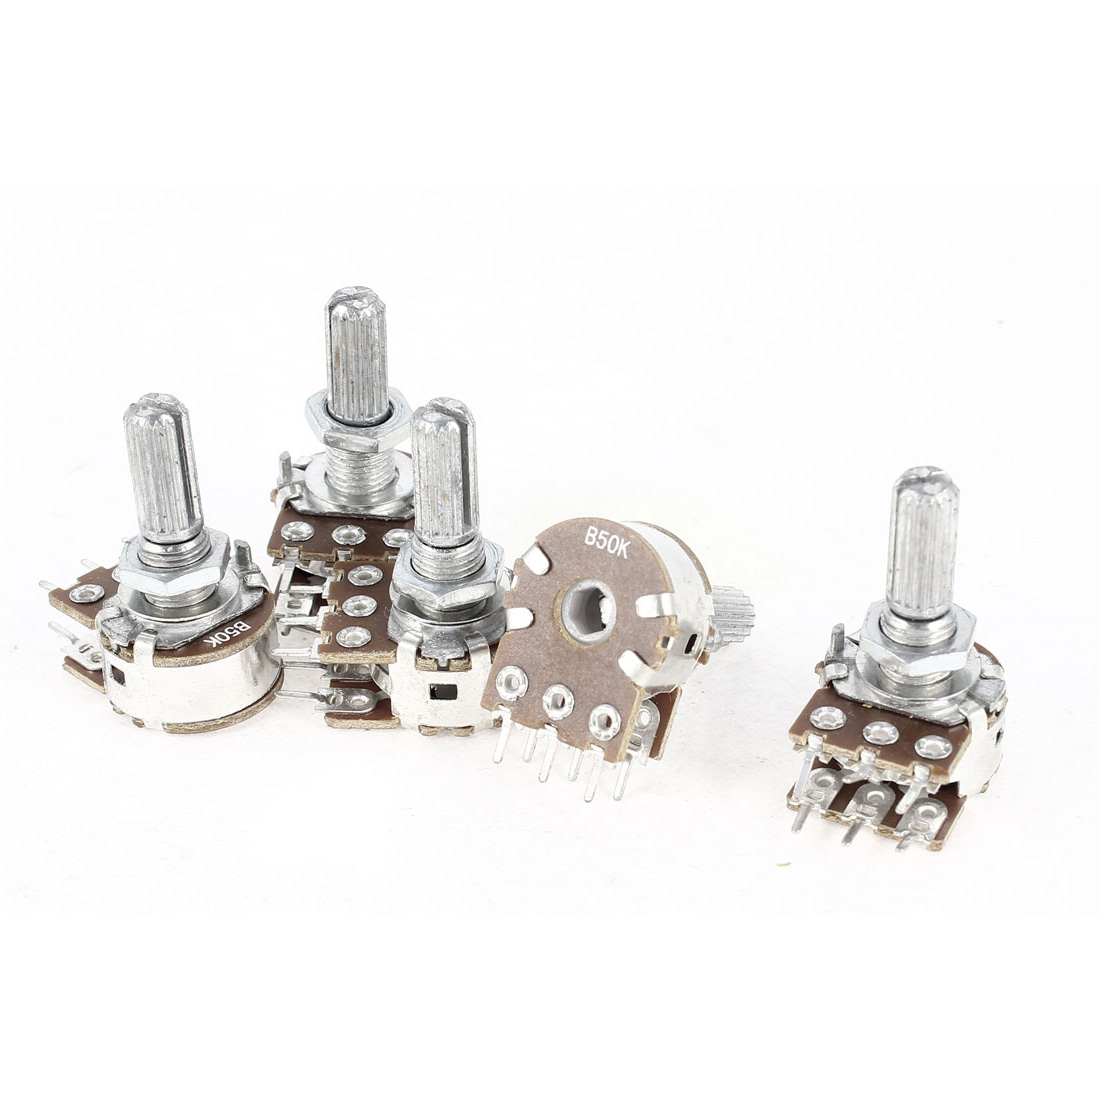 5 Pieces B50K Type B 50K Ohm 6 Terminals Dual Linear Rotary Taper Potentiometers